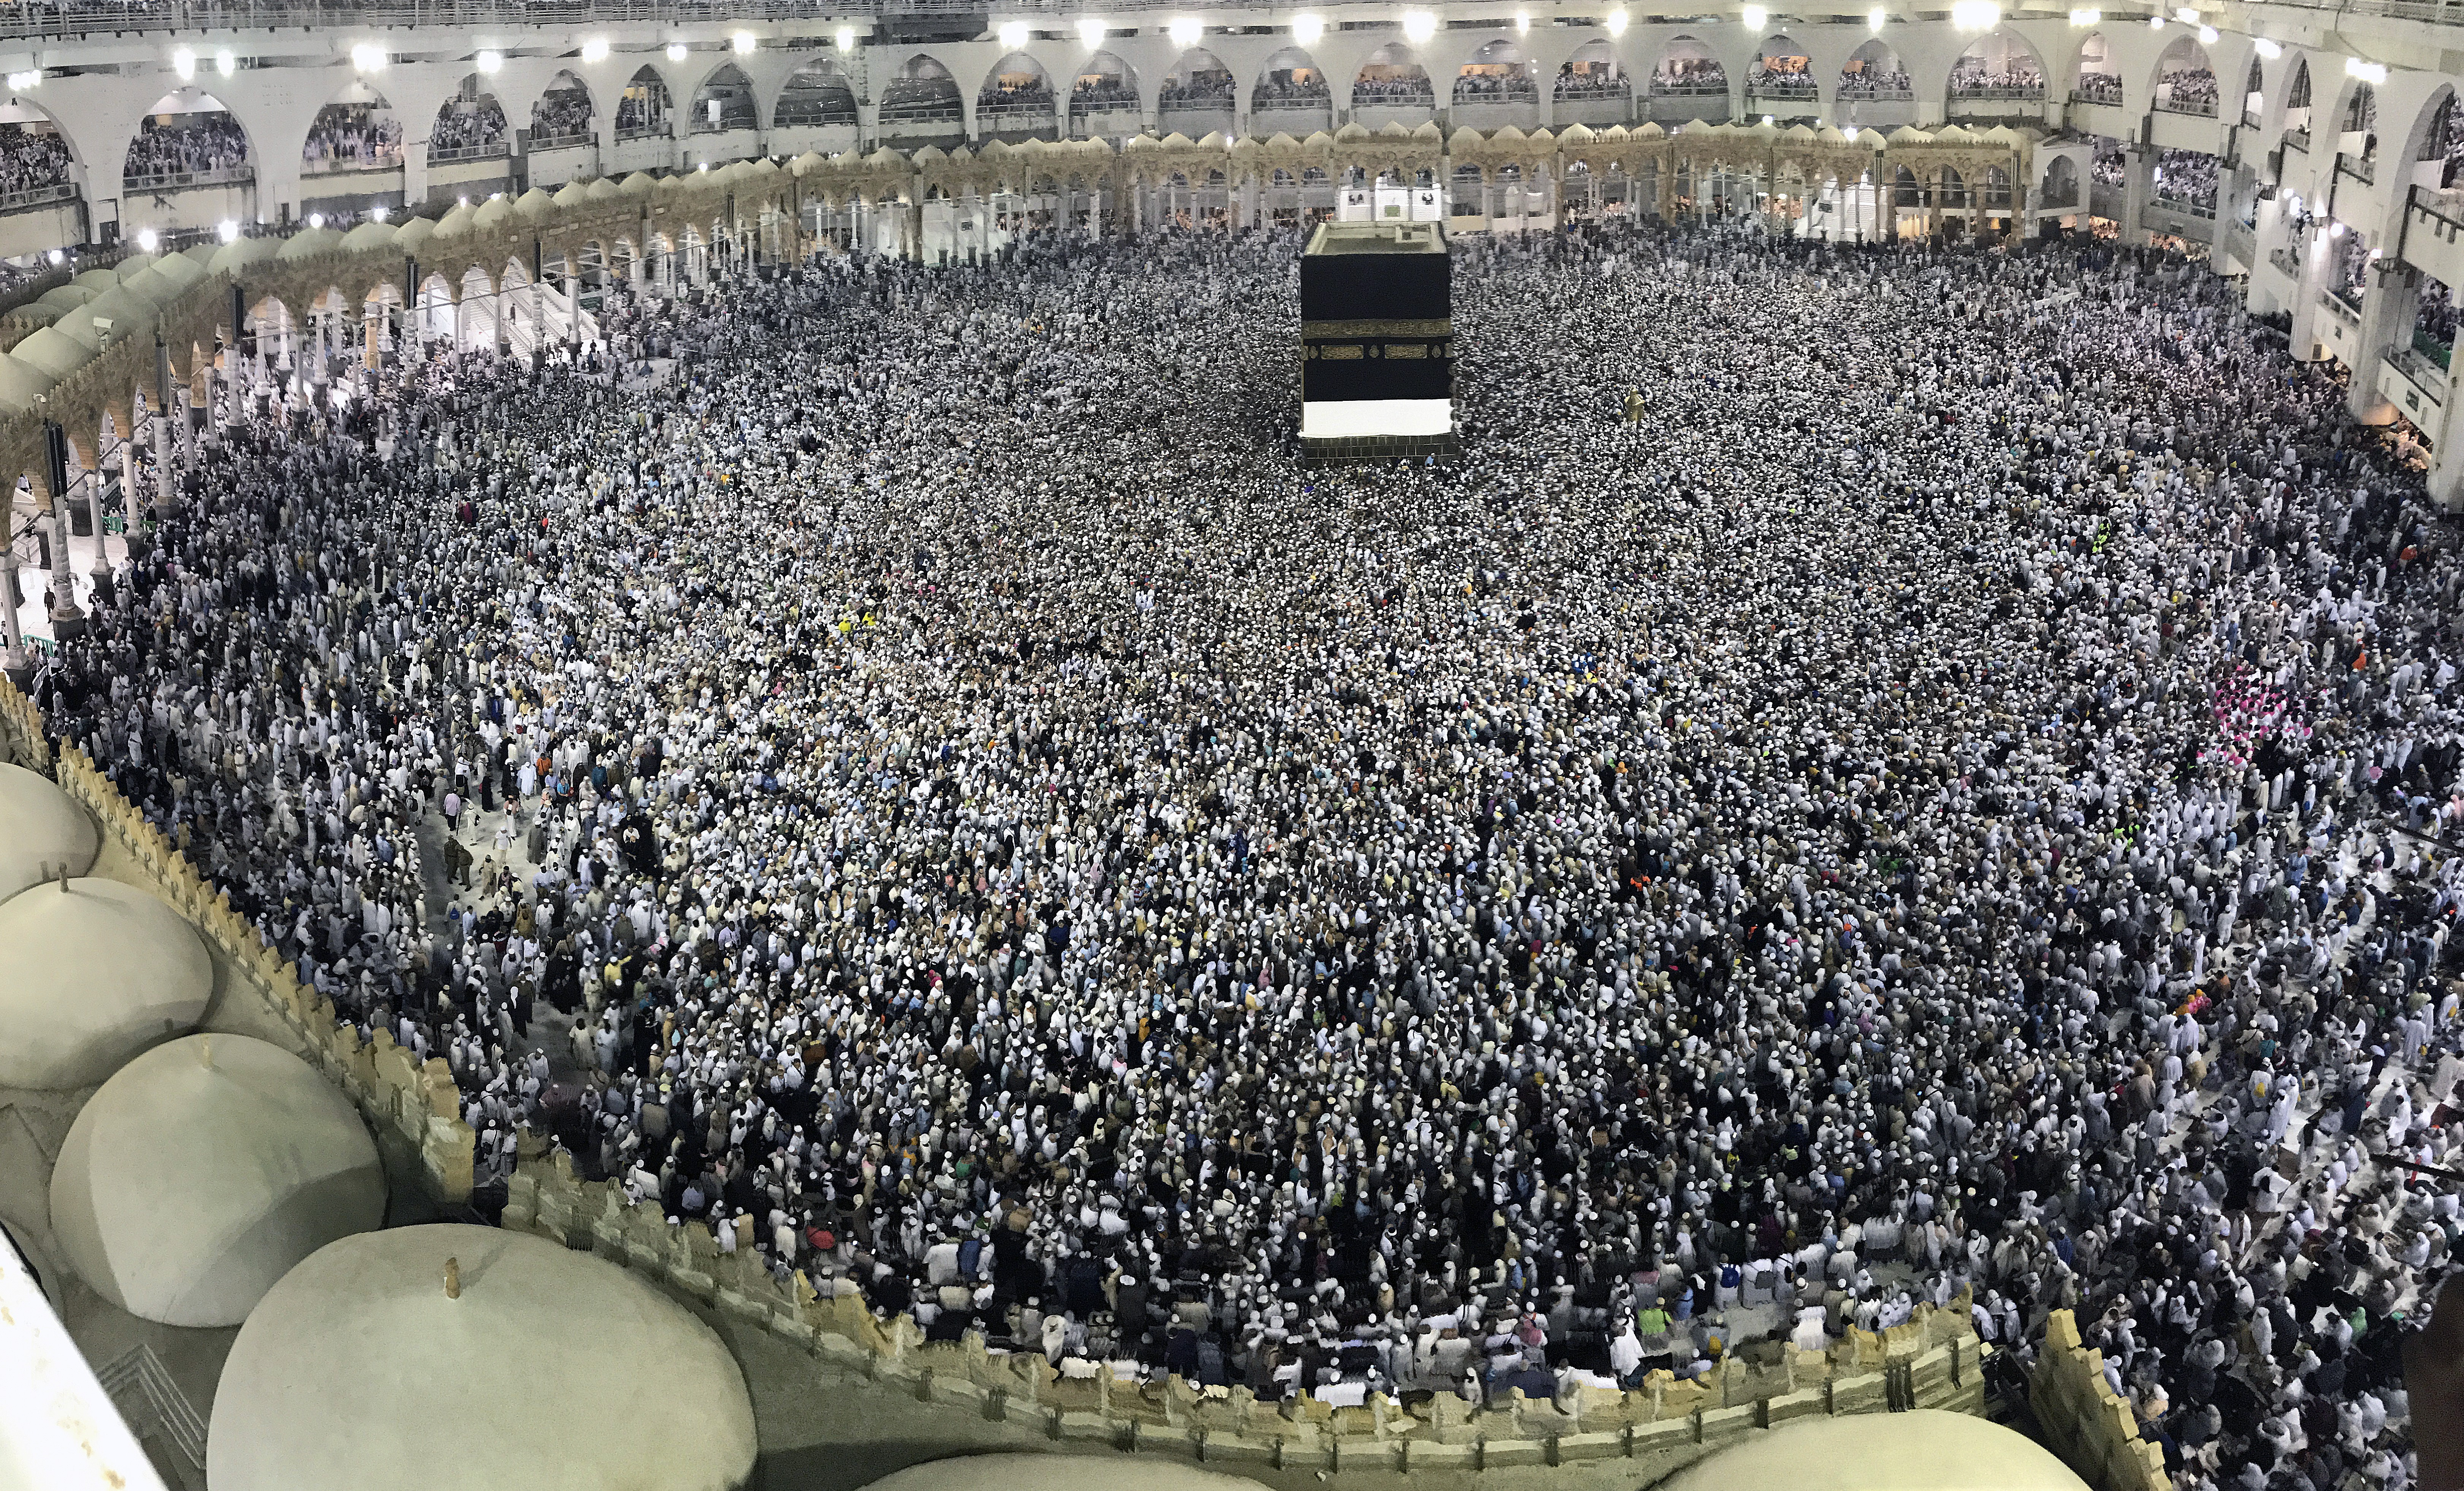 Hajj pilgrims circumambulate around the Kaaba, Islam's holiest site, located in the center of the Masjid al-Haram (Grand Mosque) in Mecca, Saudi Arabia on Aug. 22, 2017.